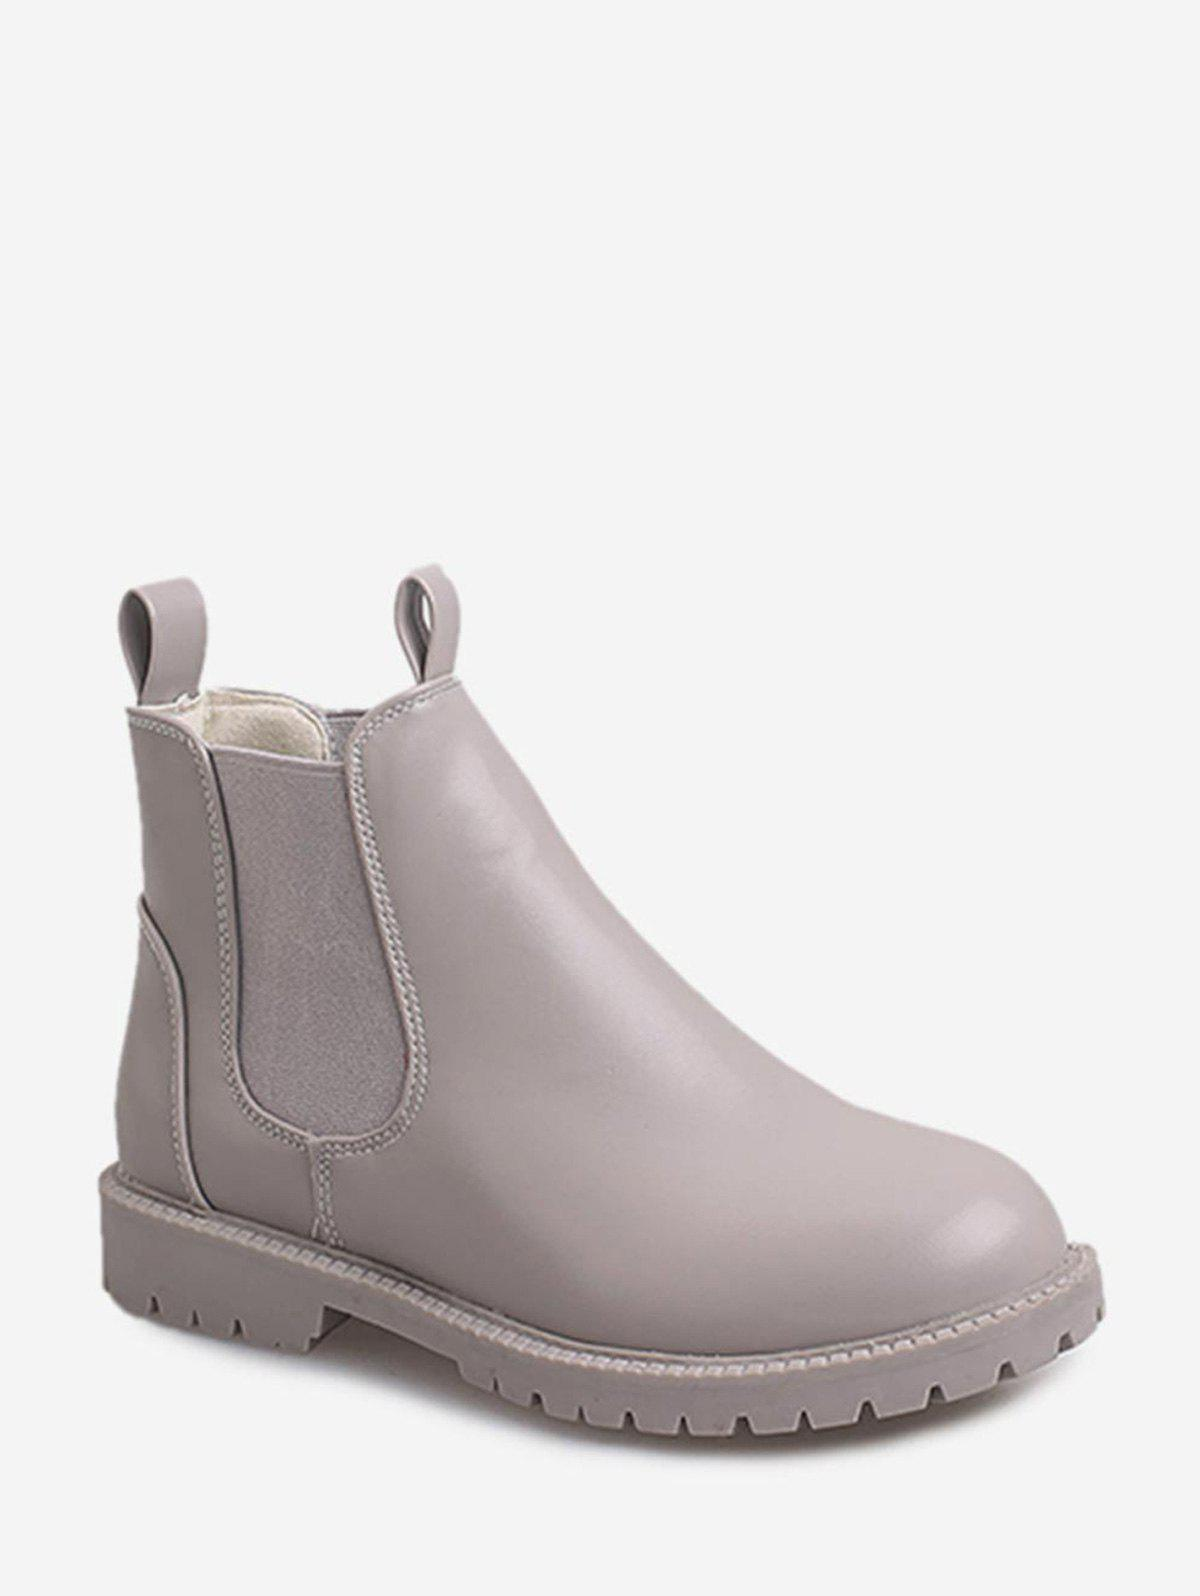 Sale Round Toe PU Leather Chelsea Boots